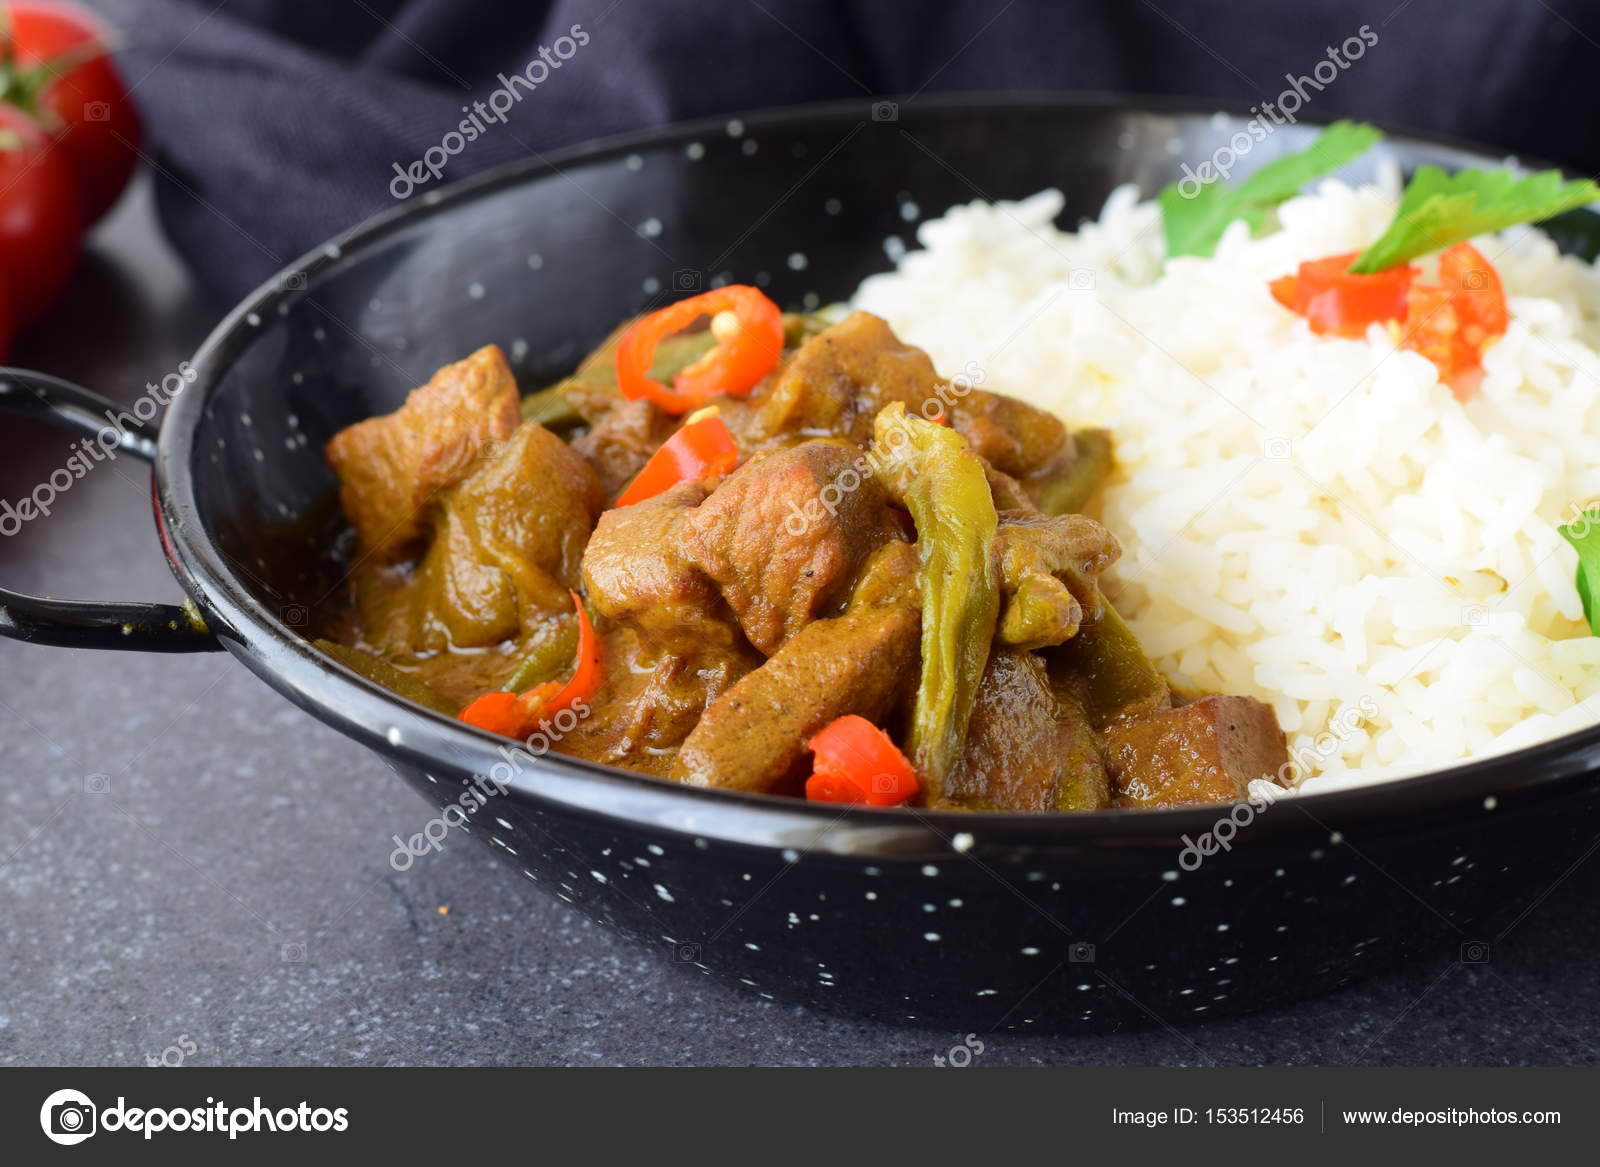 Elegant Pork In Spicy Curry Sause With Eggplant And Green Beans, Served With Cooked  Rice In A Black Metal Bowl On A Grey Abstract Background. Home Cooking.